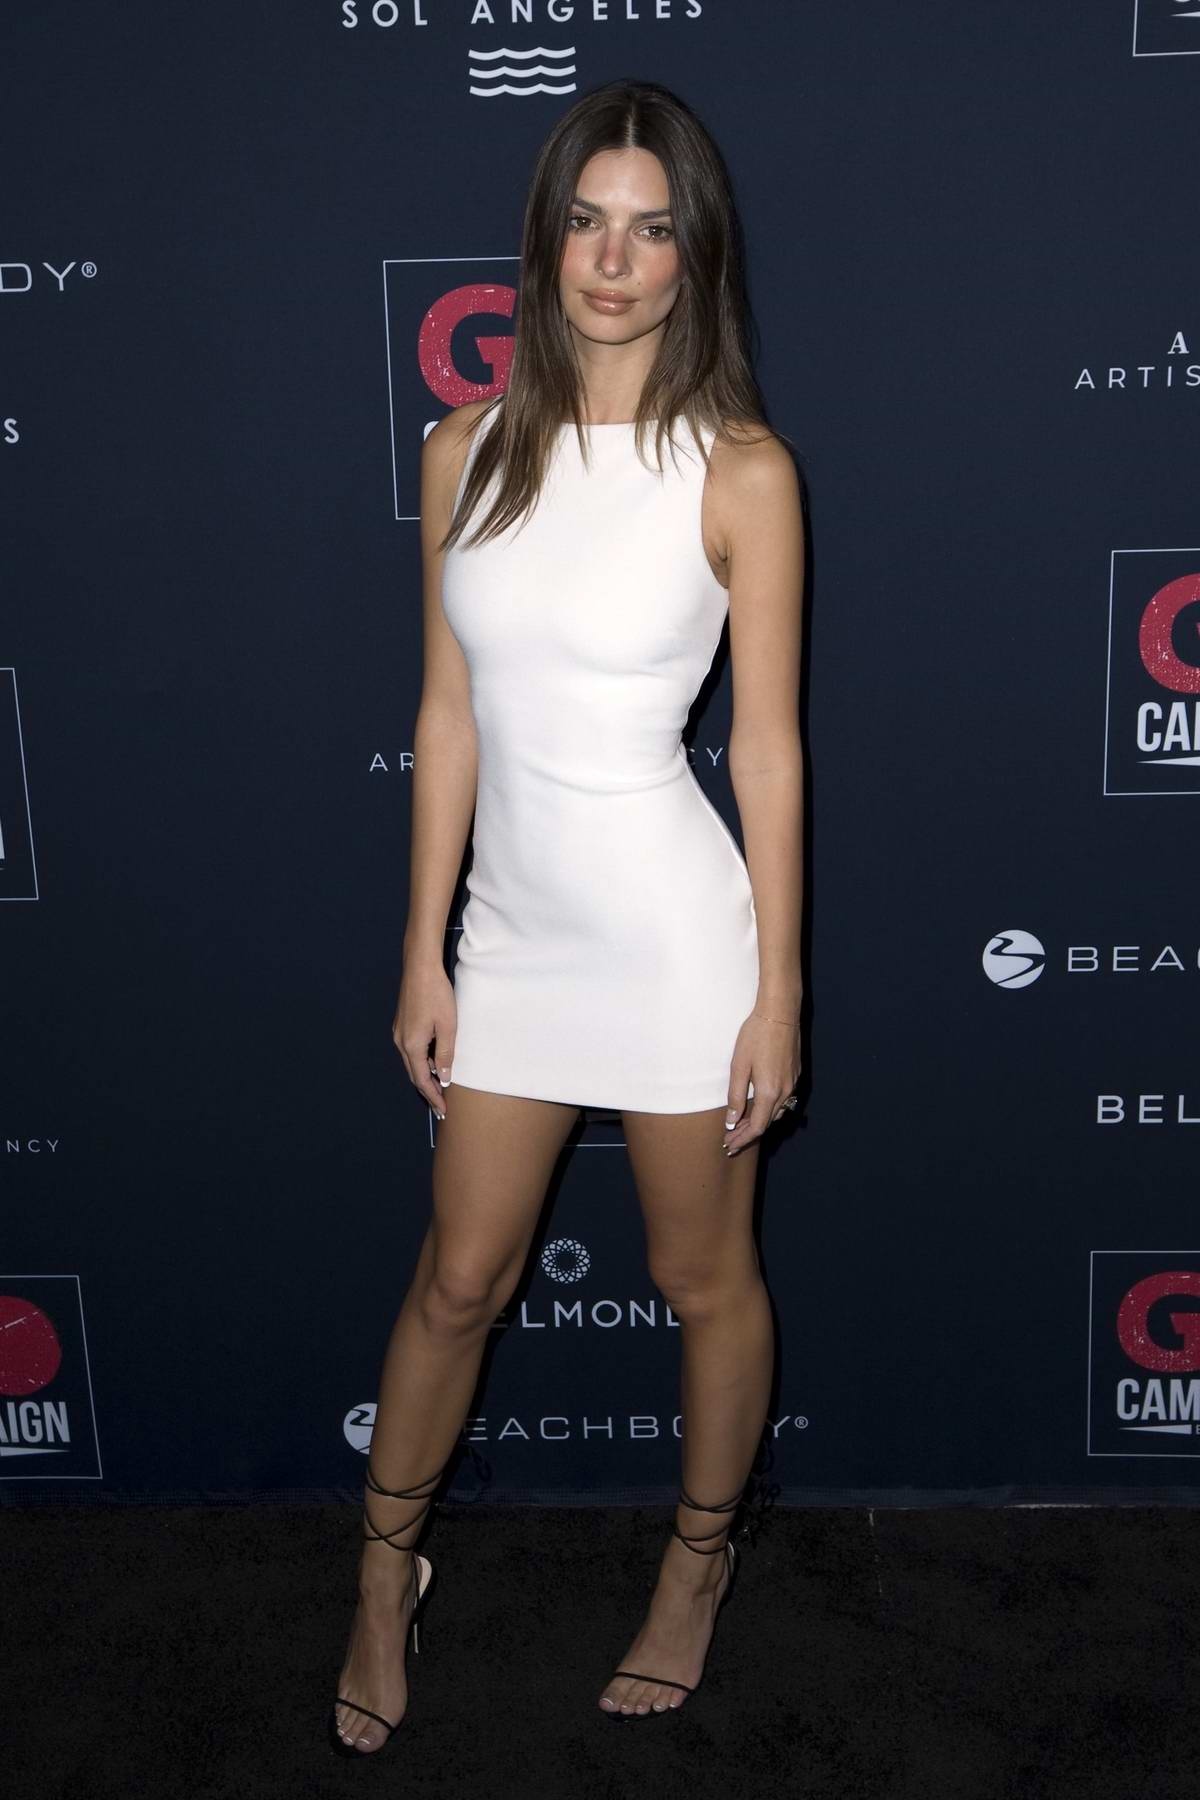 Emily Ratajkowski attends the GO Campaign's 13th Annual Gala at NeueHouse in Hollywood, California